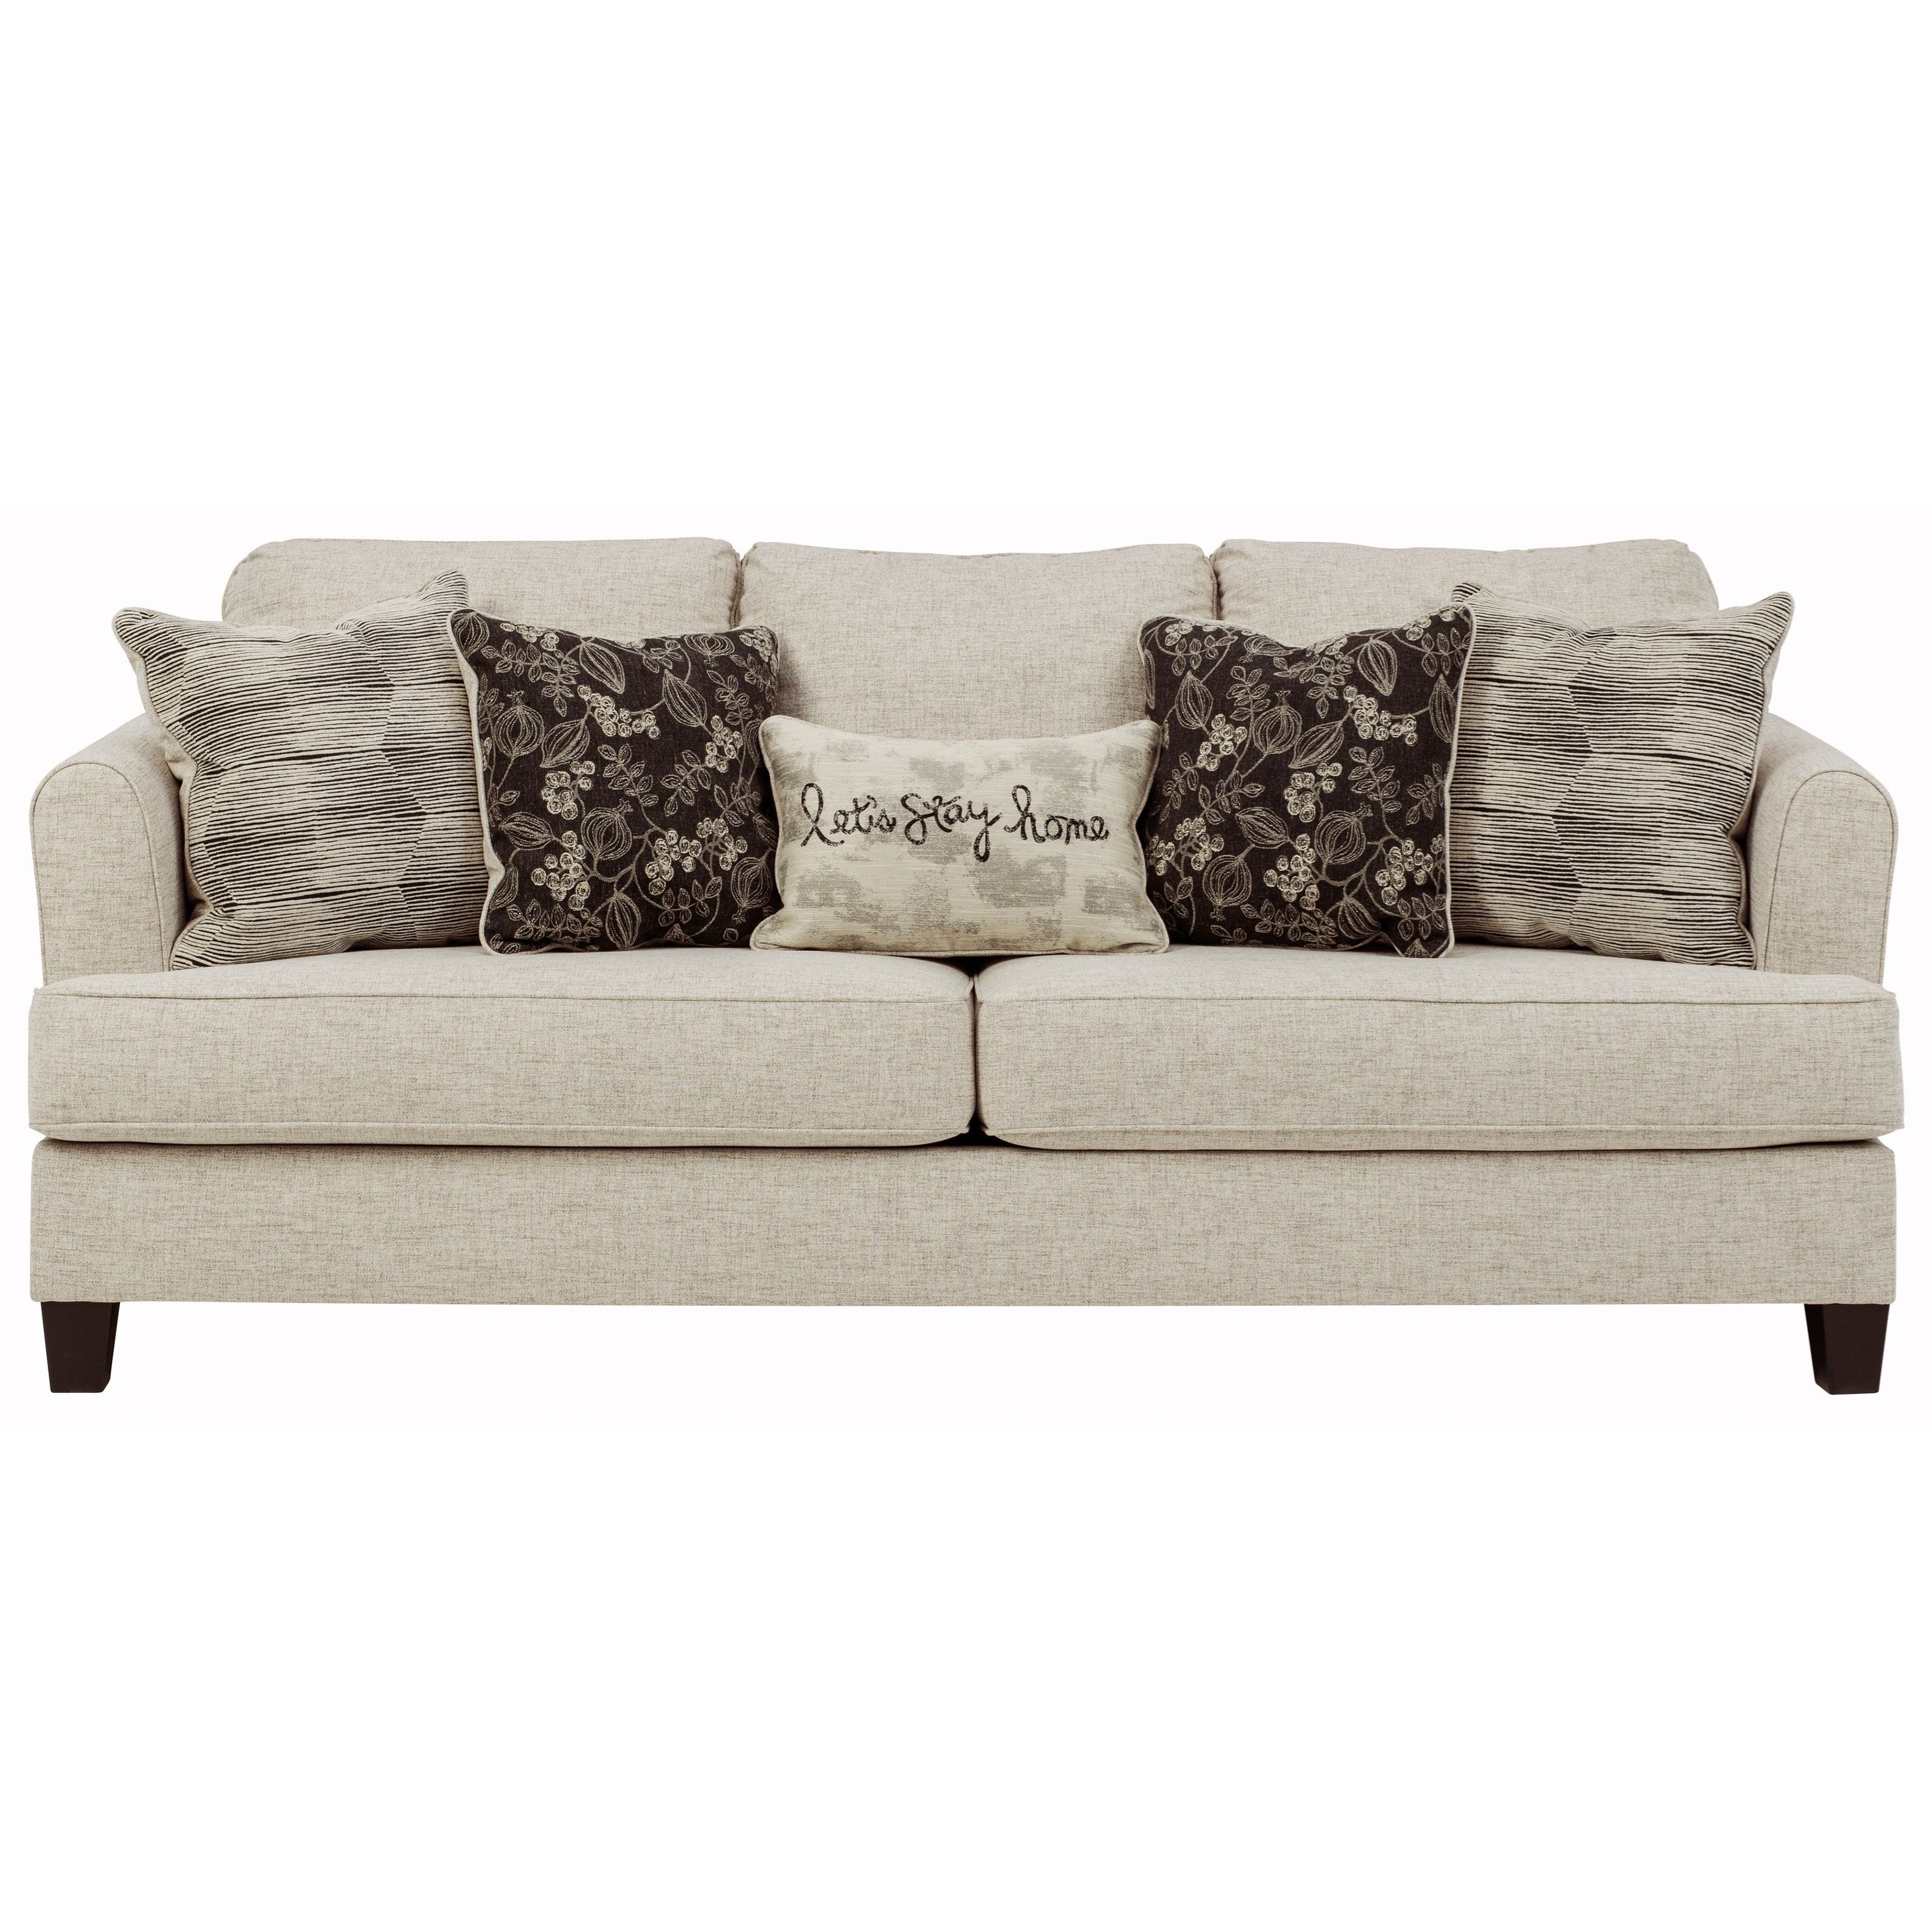 Callisburg Sofa by Benchcraft at Standard Furniture